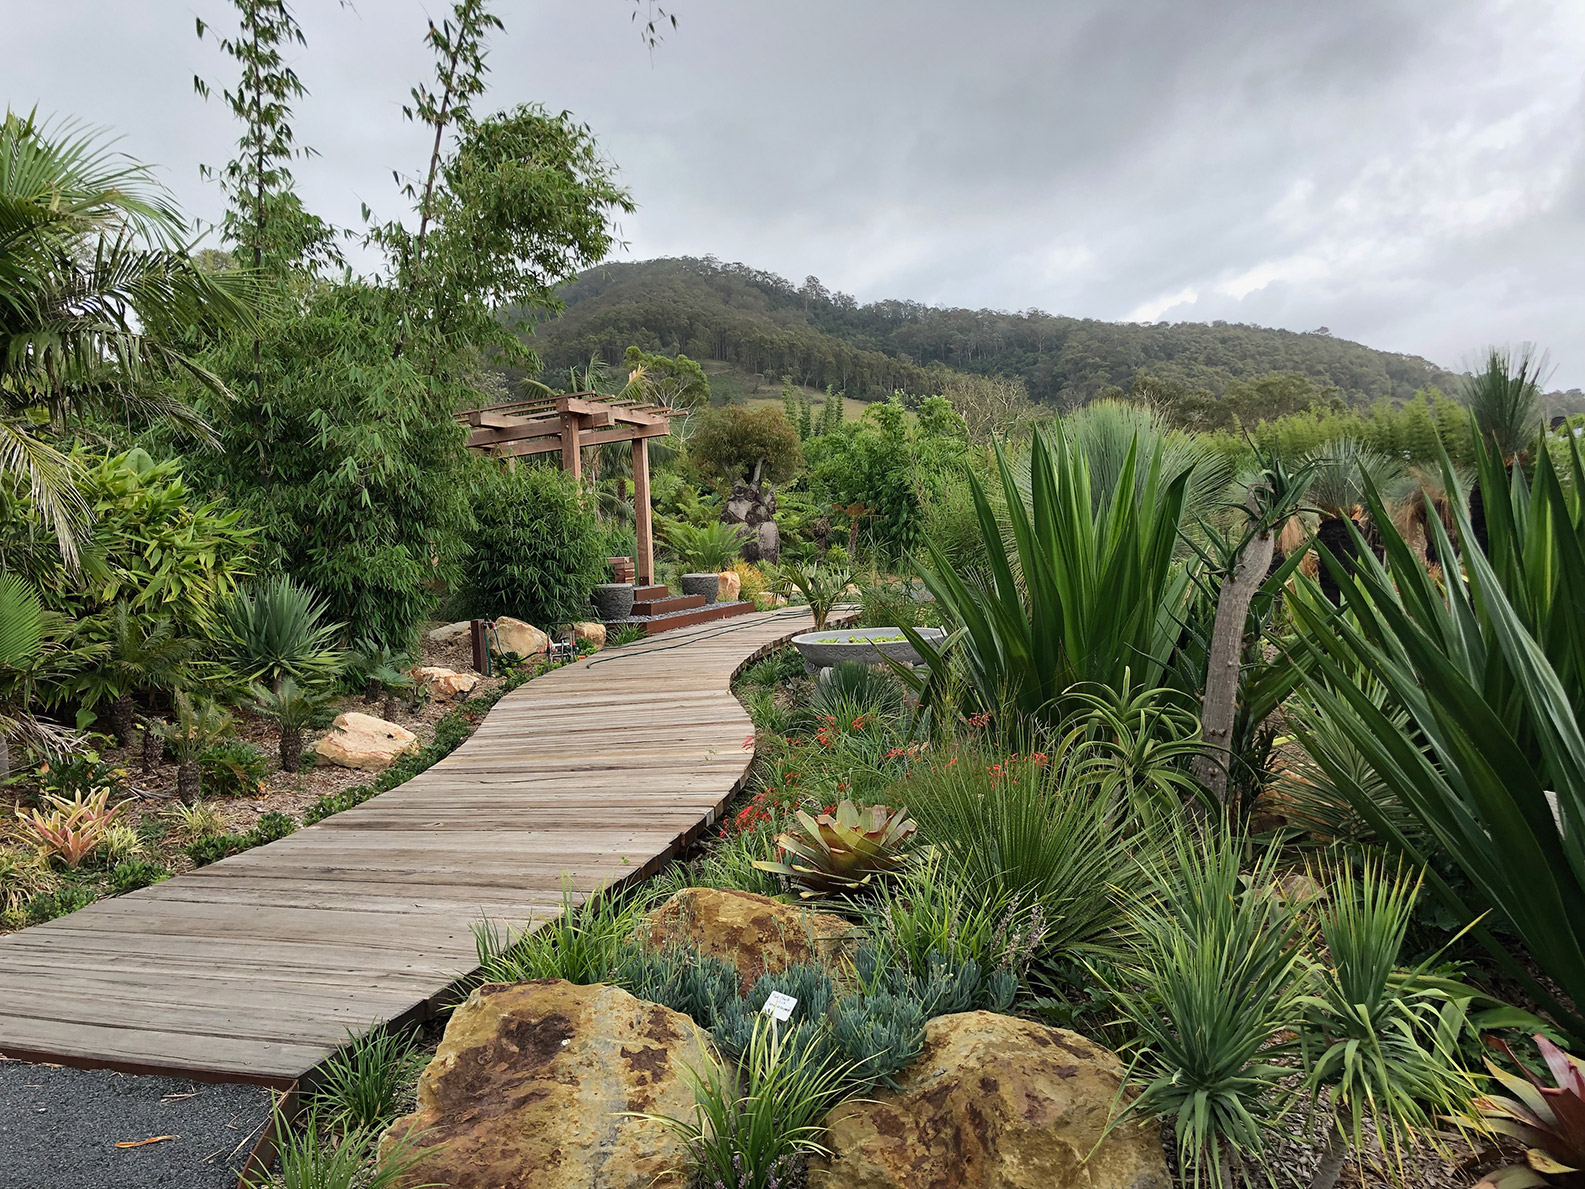 Landscape Design and Construction Berry by Bamboo South Coast